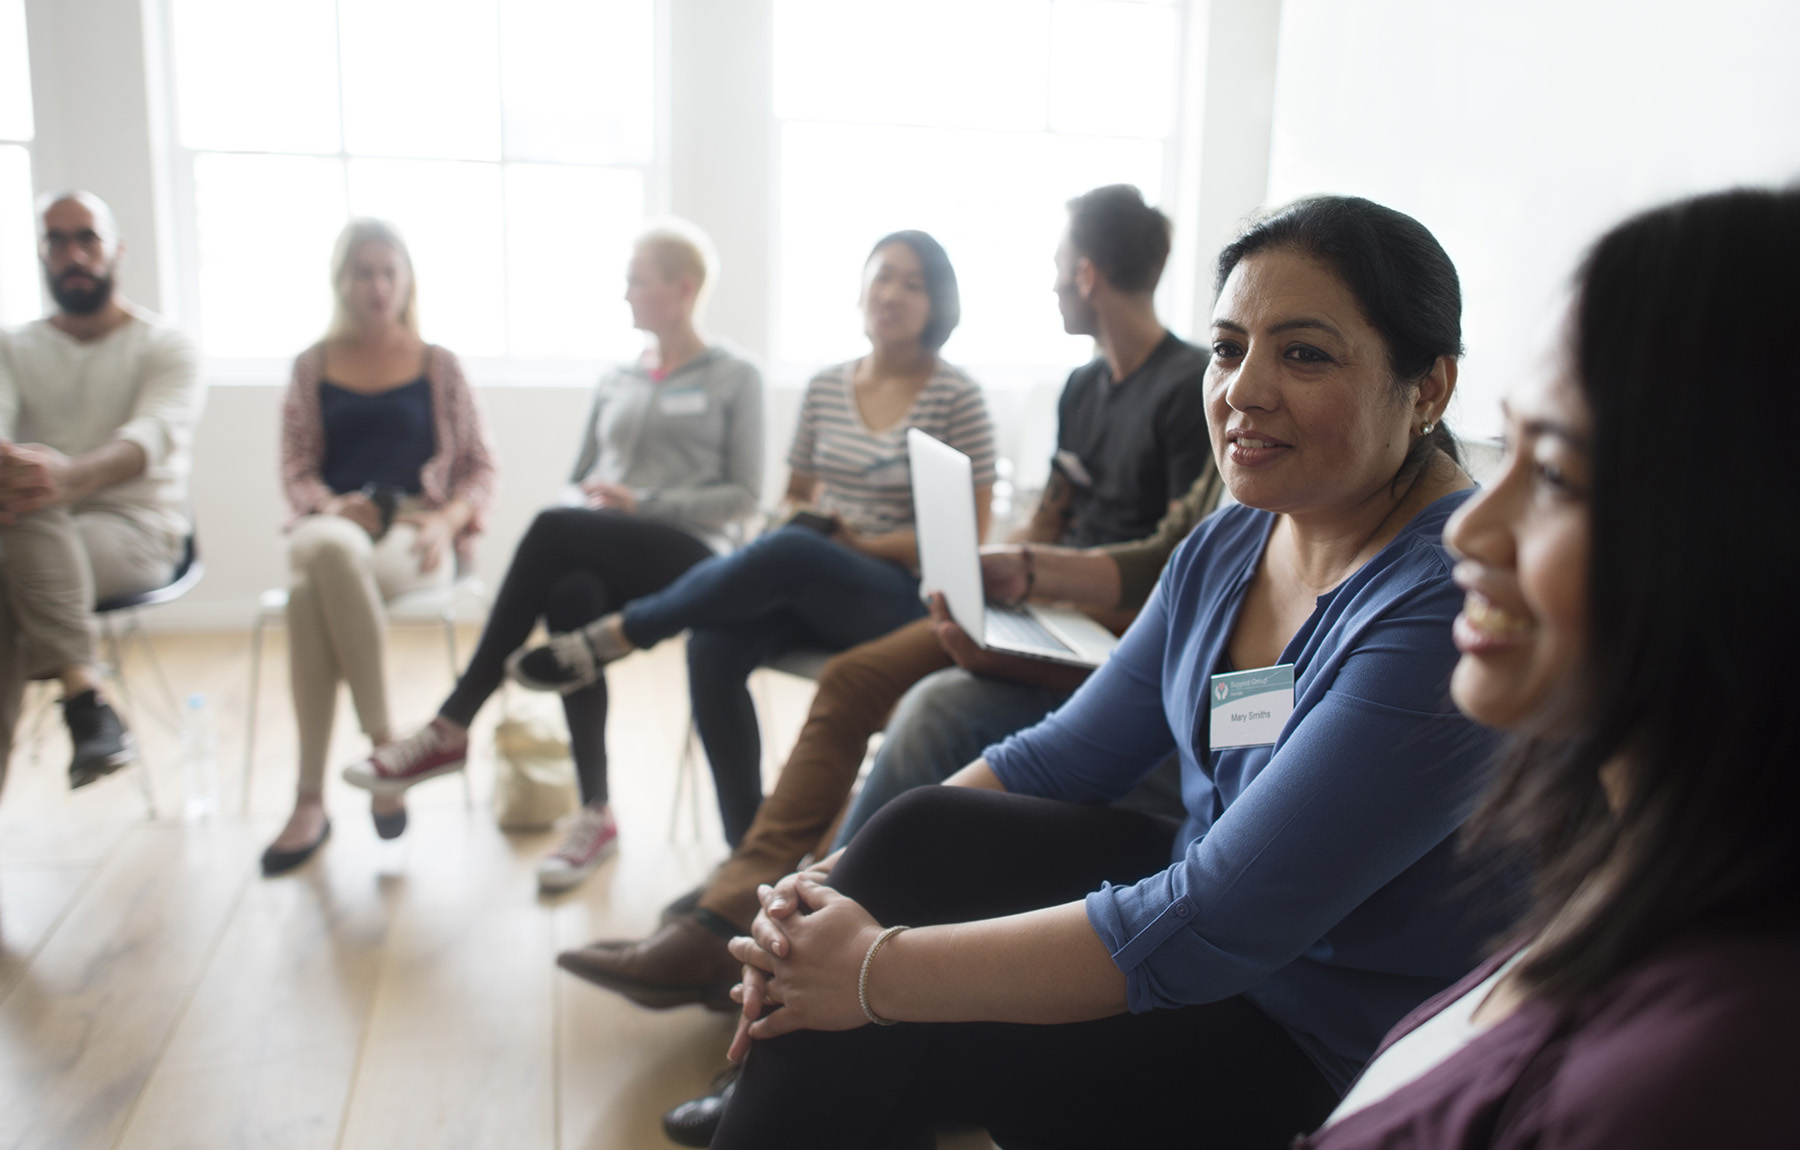 6 Ways to Make Small Group Leader Meetings Great